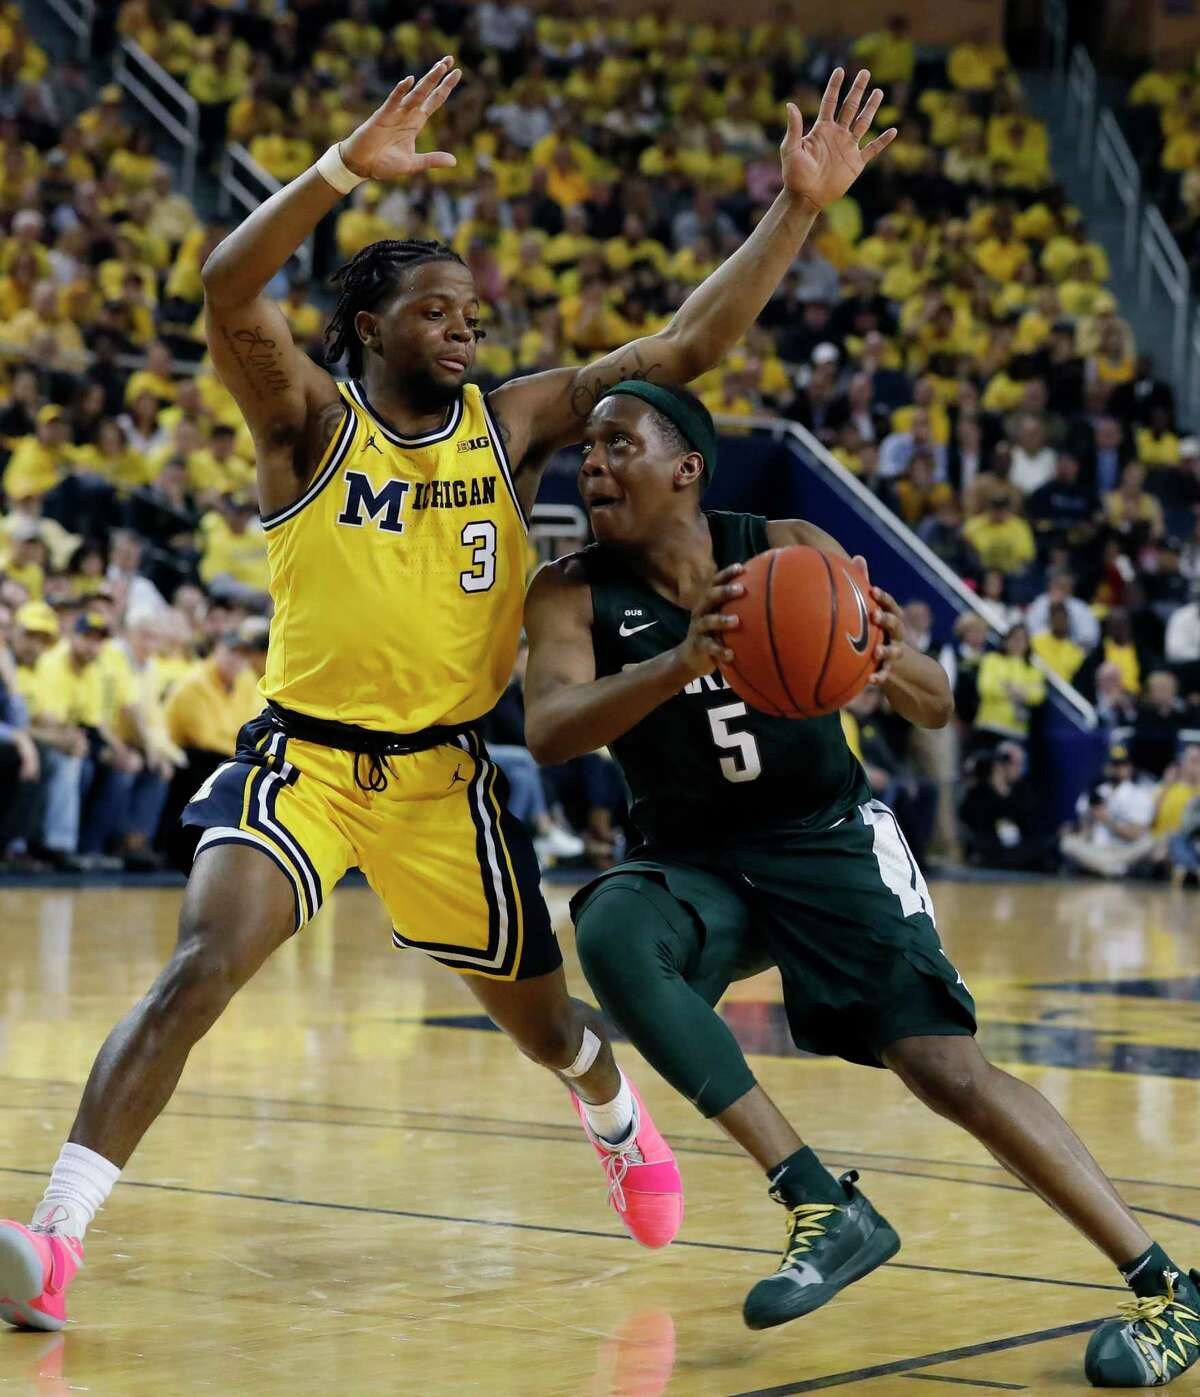 Michigan State guard Cassius Winston (5) drives on Michigan guard Zavier Simpson (3) during the second half of an NCAA college basketball game, Sunday, Feb. 24, 2019, in Ann Arbor, Mich. (AP Photo/Carlos Osorio)